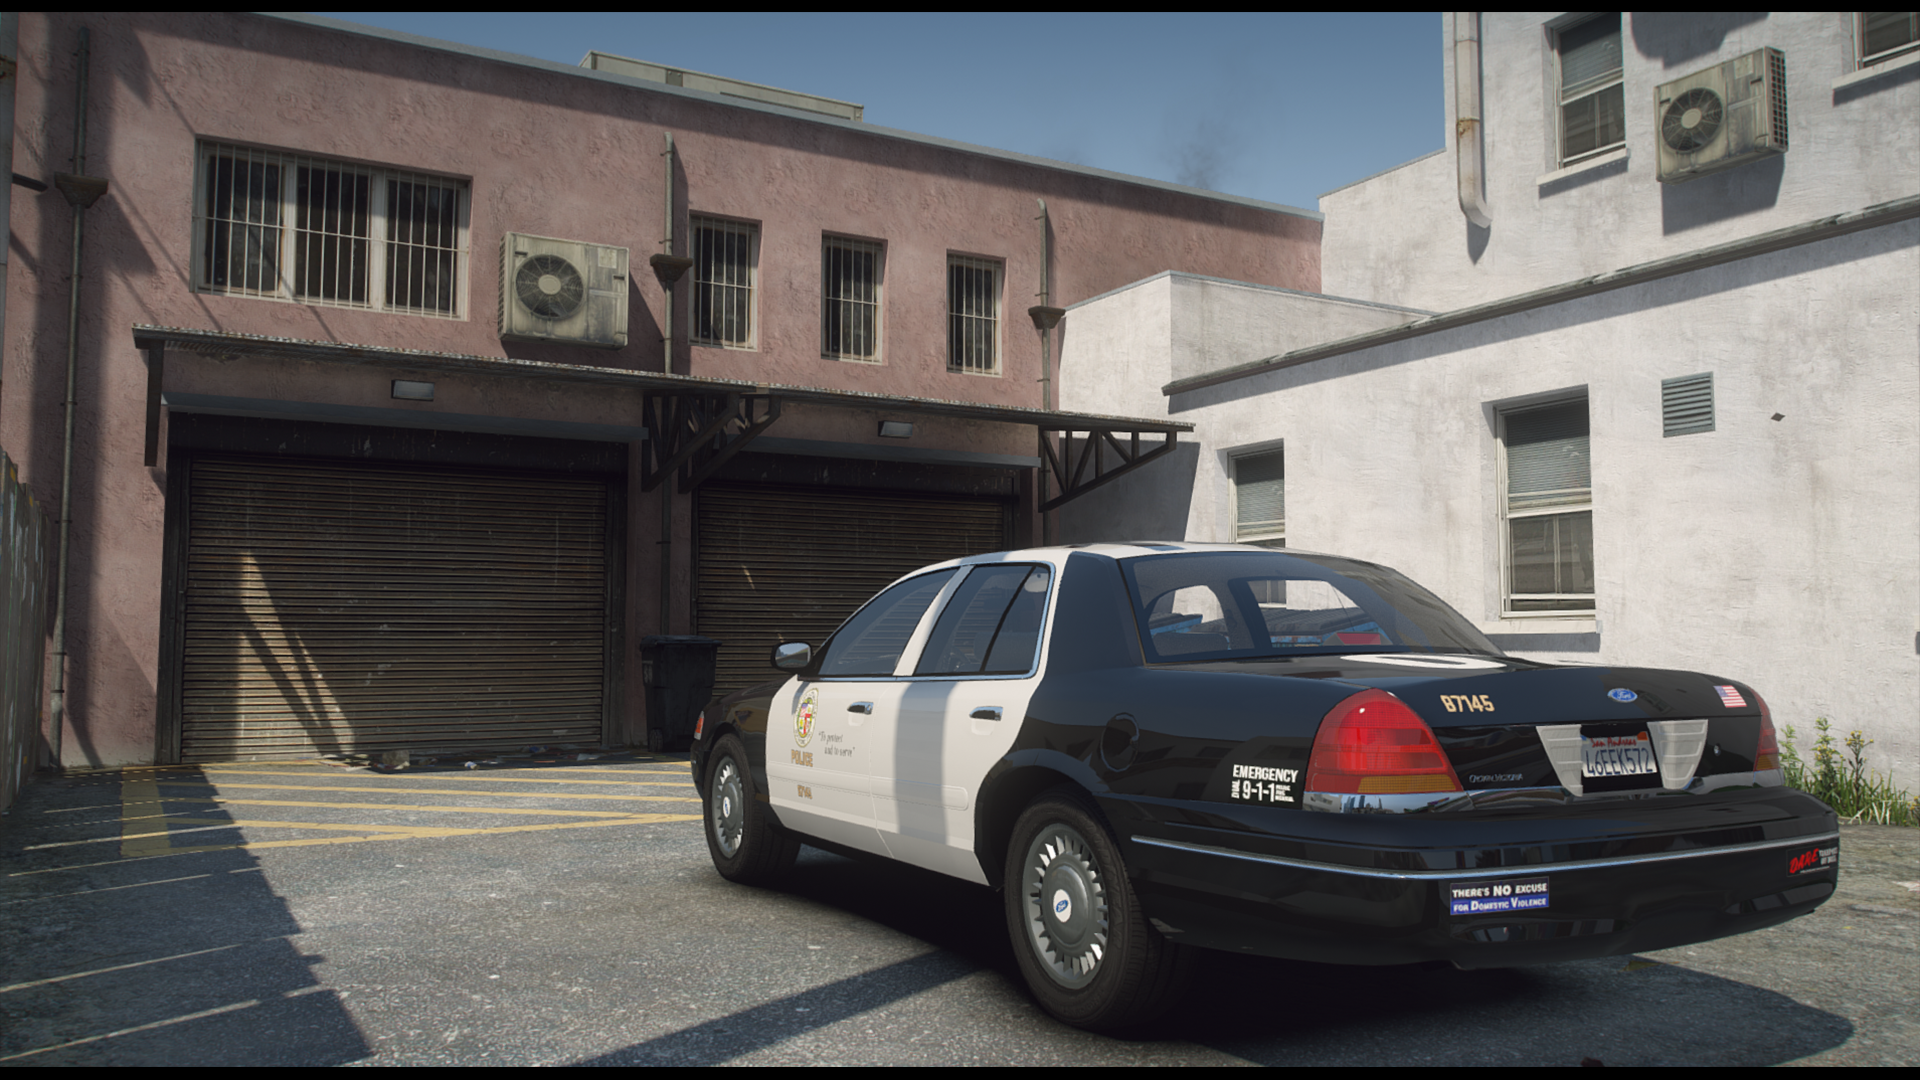 98' LAPD Ford Crown Victoria